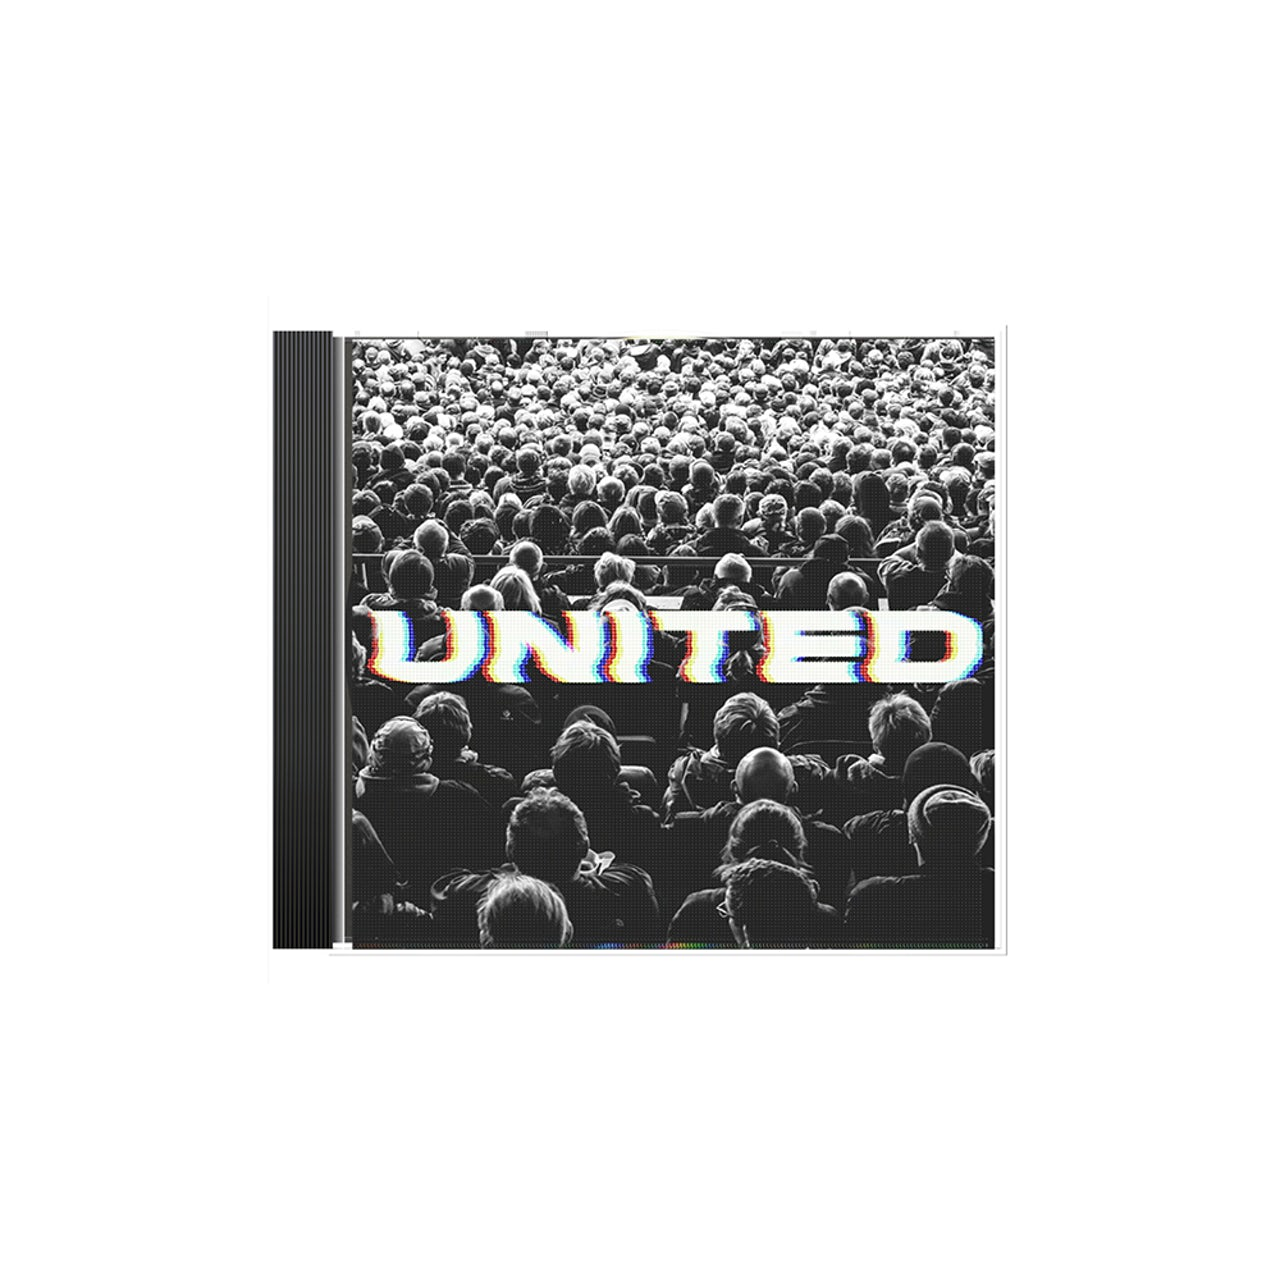 Hillsong United 'People' (Live) CD/DVD